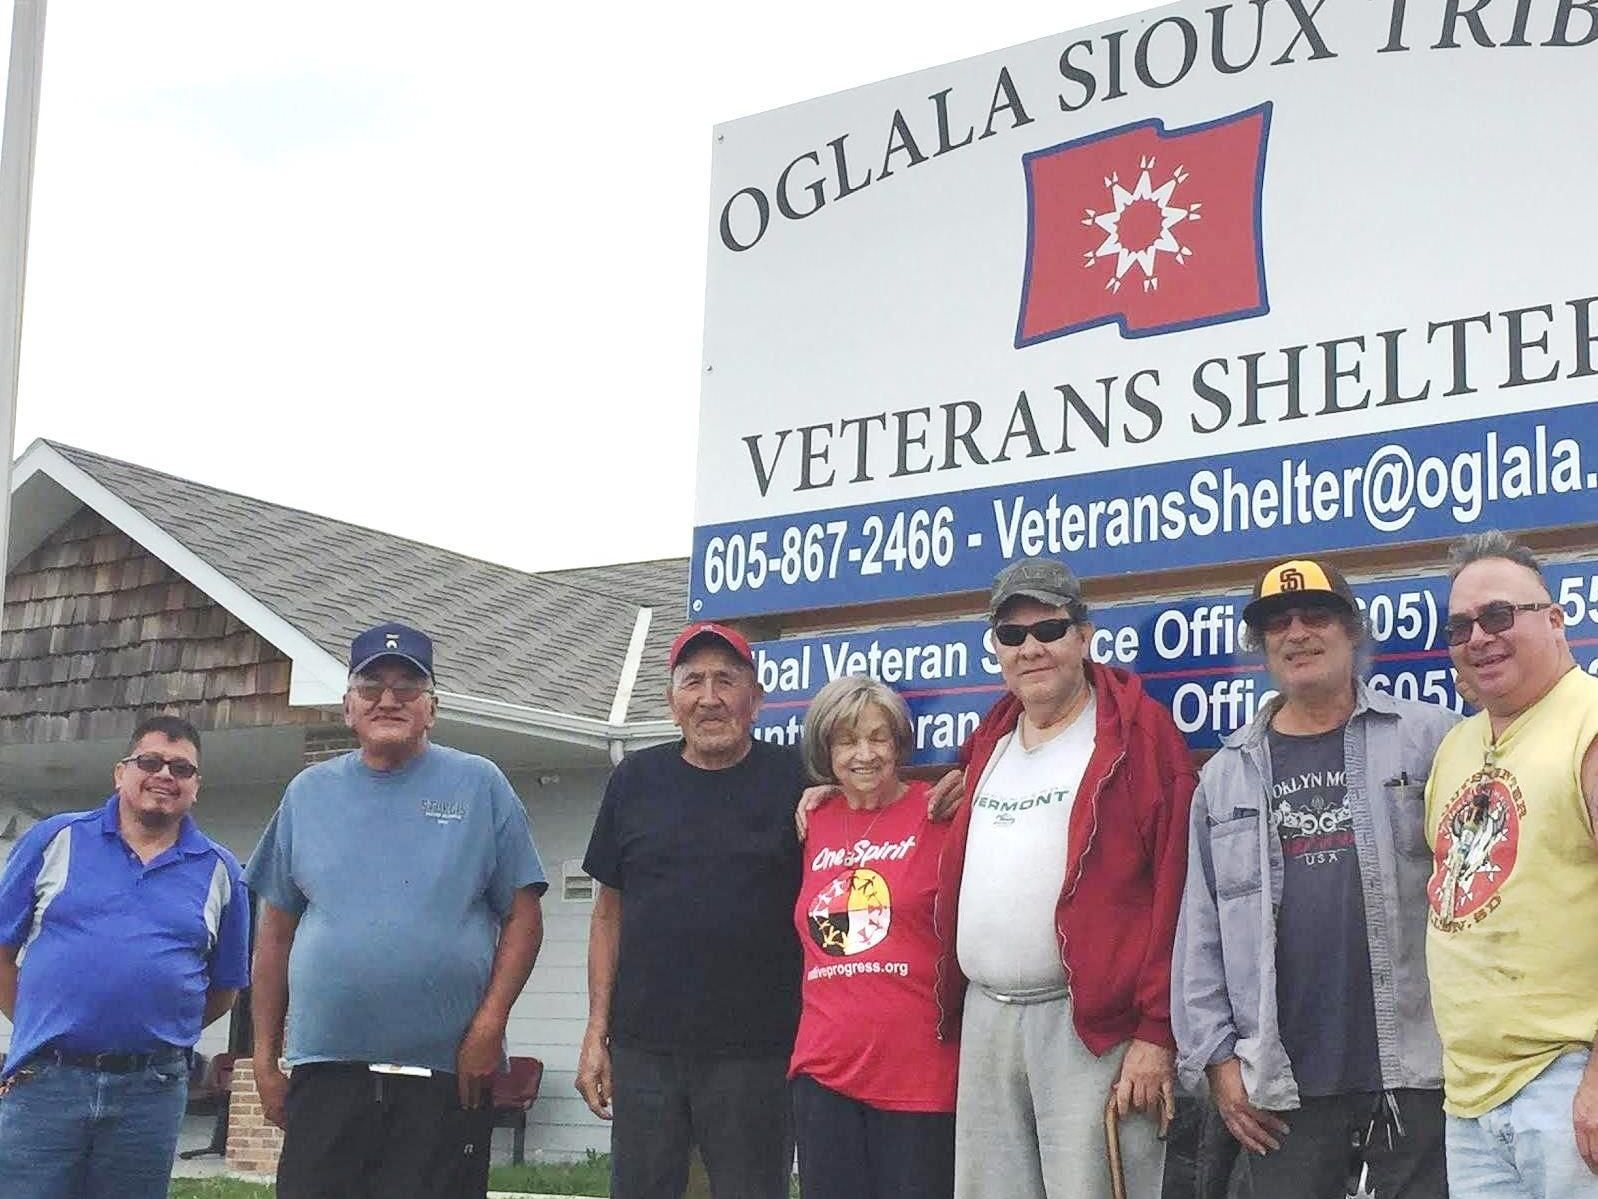 Team in front of Veteran's shelter